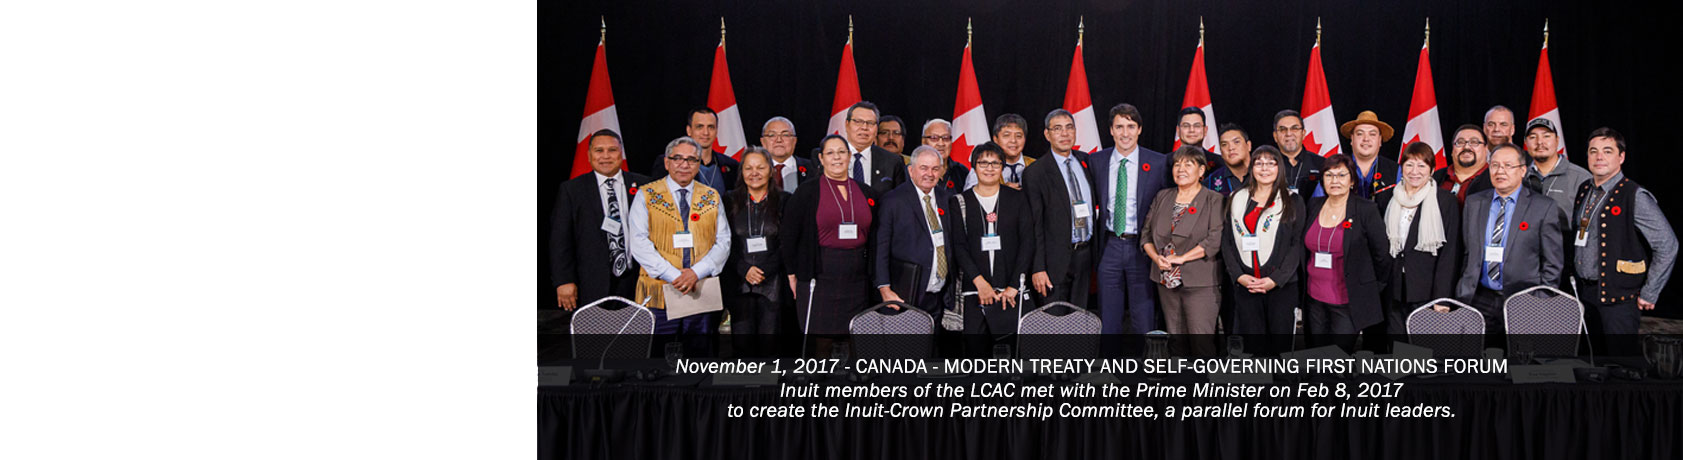 Canada - Modern Treaty and Self-Governing First Nations Forum